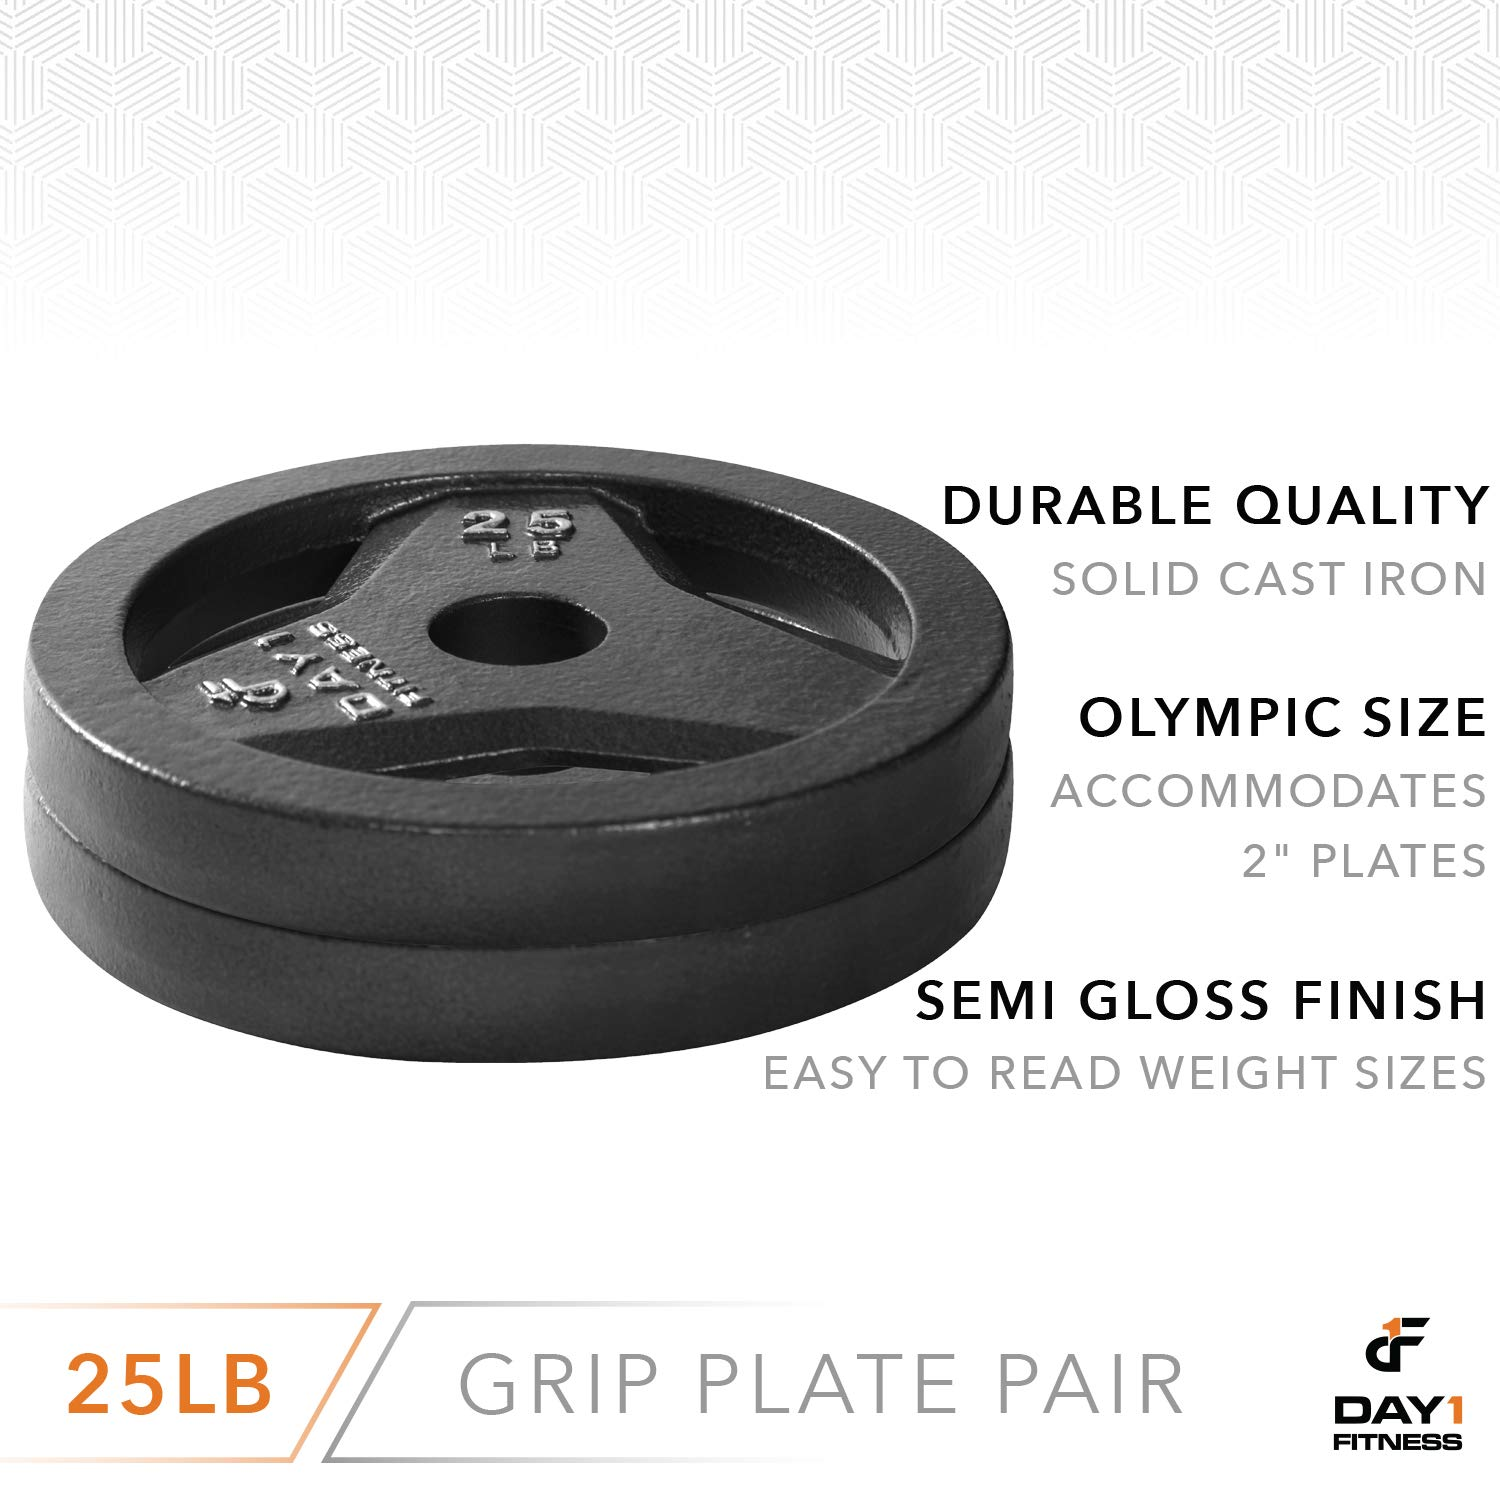 "Day 1 Fitness Cast Iron Olympic 2-Inch Grip Plate for Barbell, 25 Pound Set of 2 Plates Iron Grip Plates for Weightlifting, Crossfit - 2"" Weight Plate for Bodybuilding by Day 1 Fitness (Image #3)"